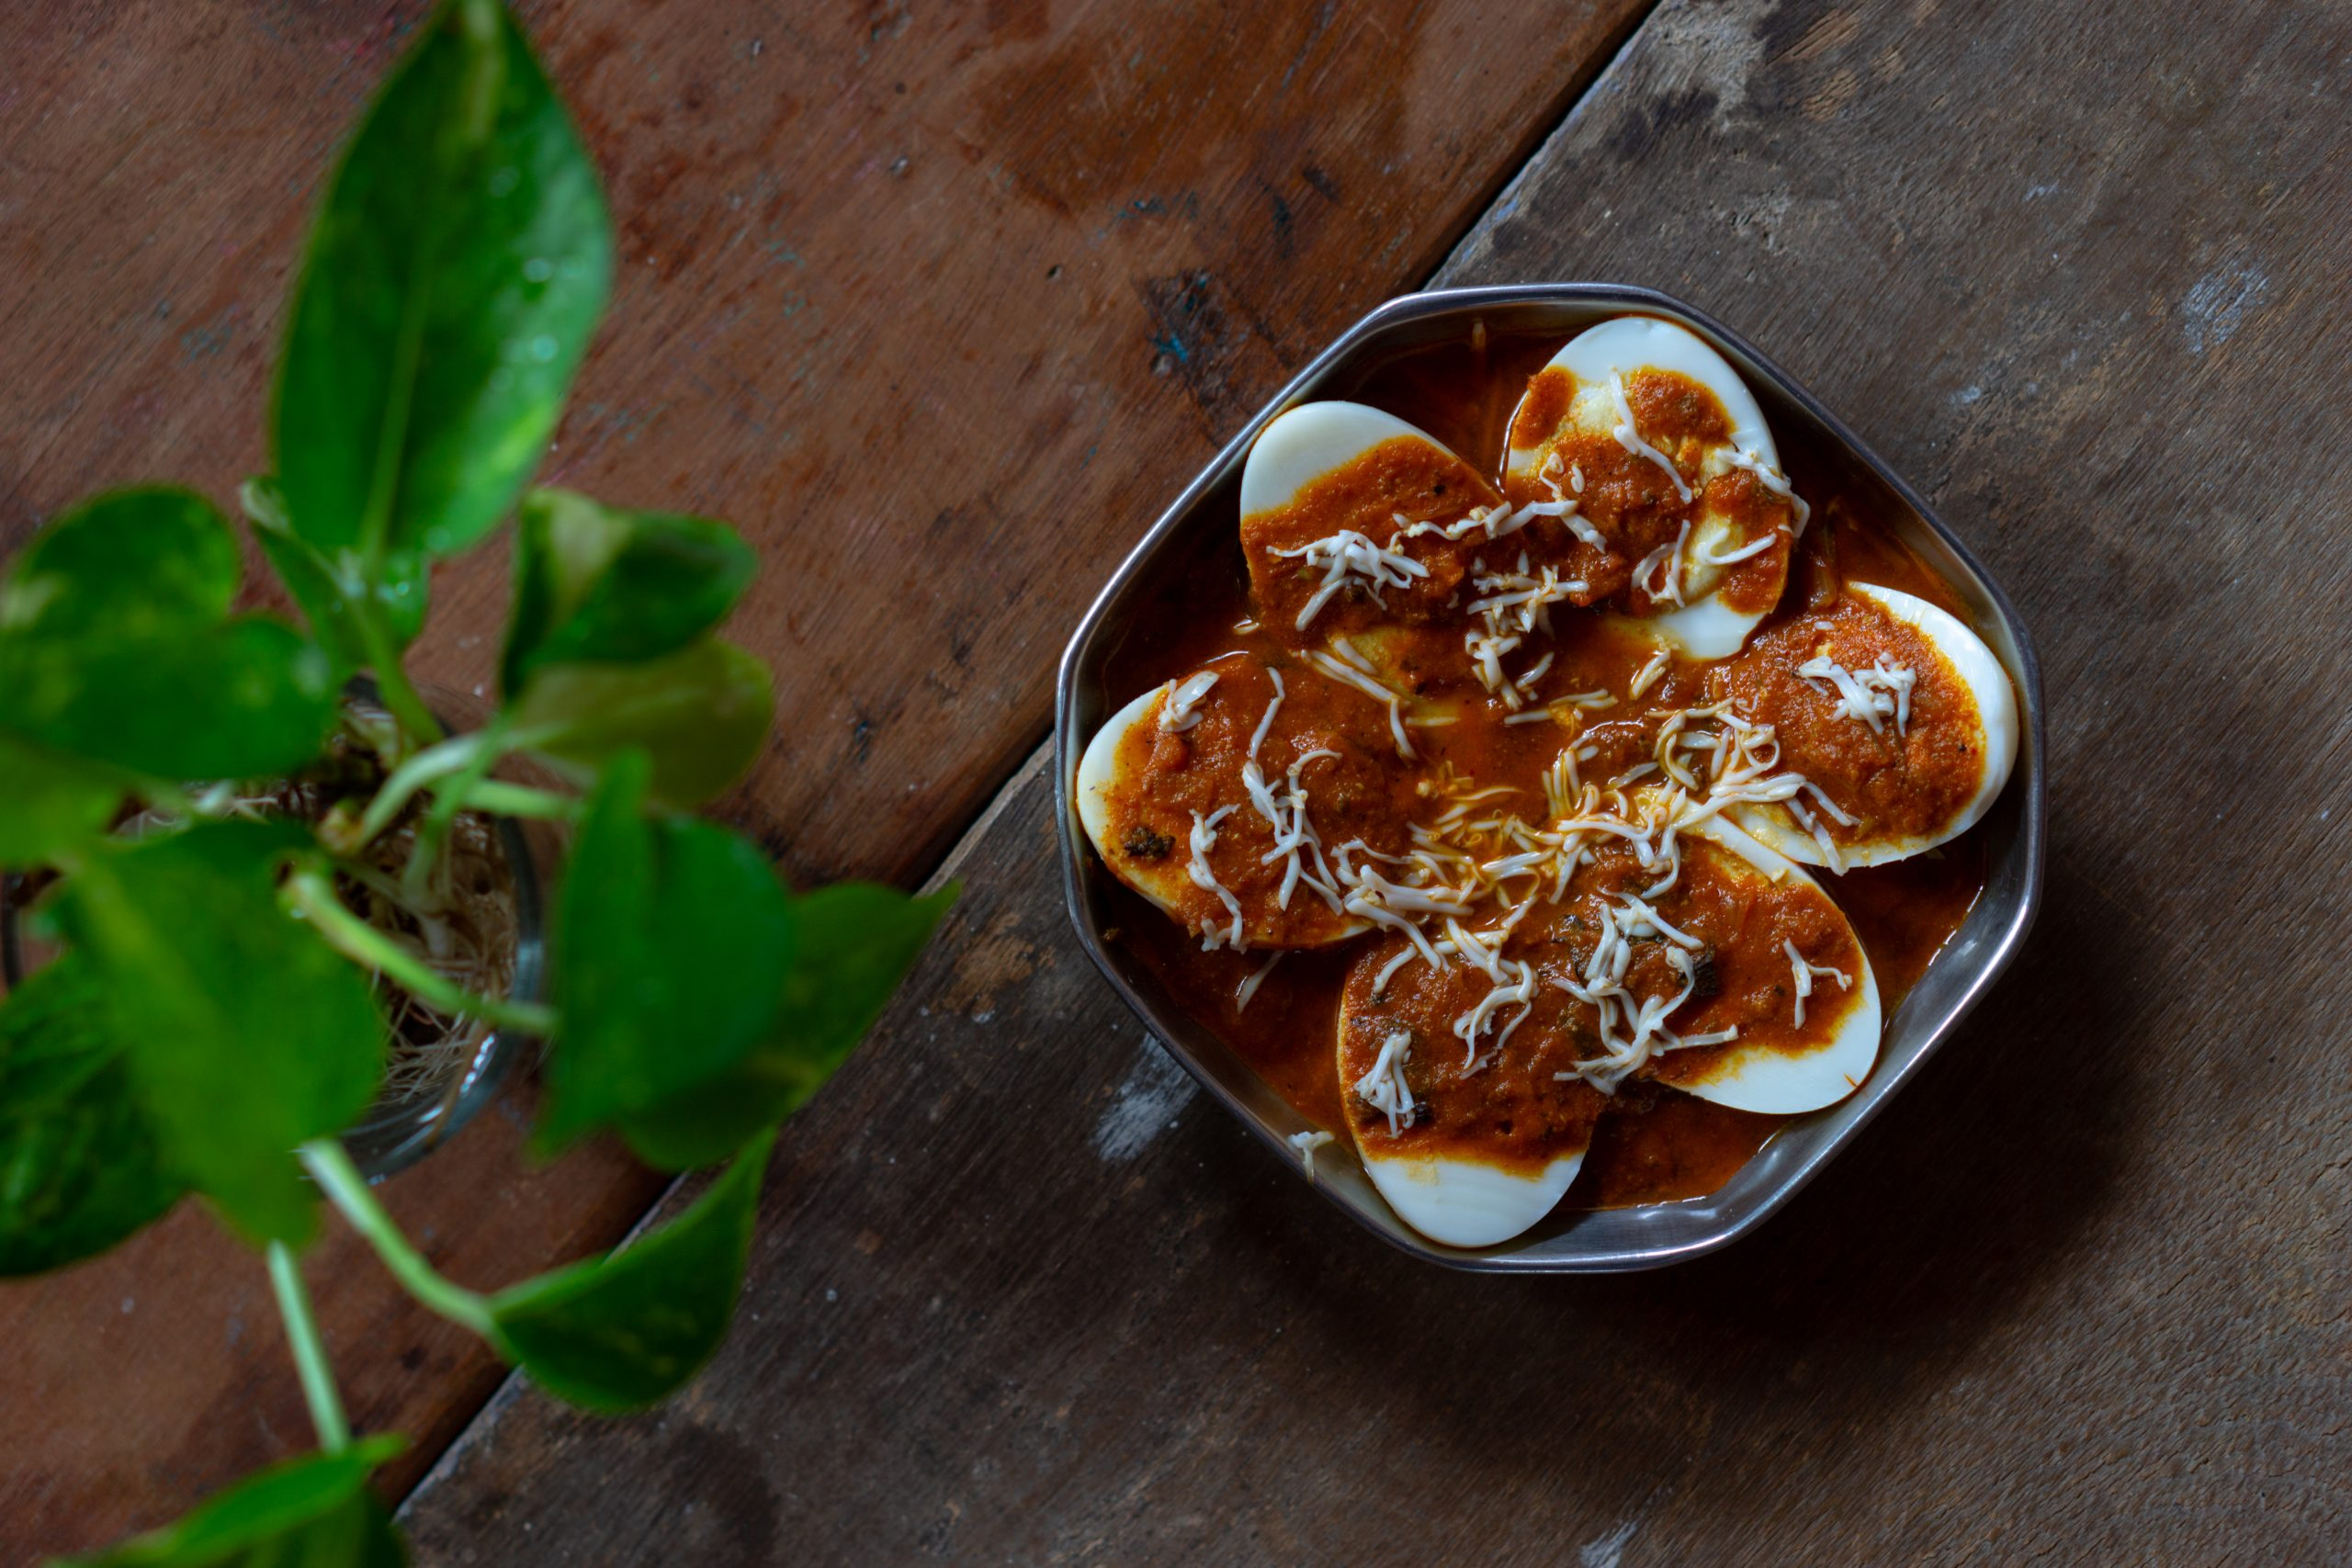 Boiled eggs with spicy sauce